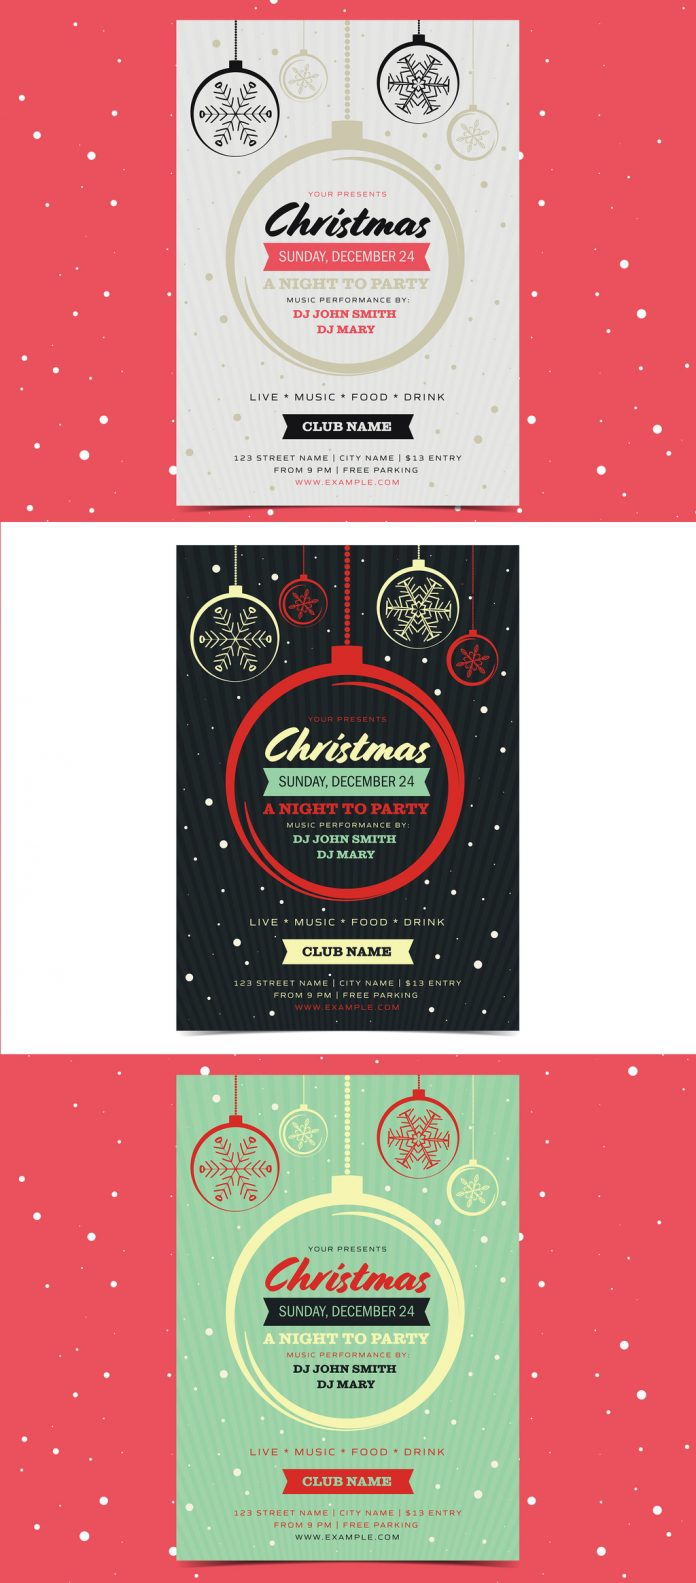 The Christmas party flyer template can be downloaded here.